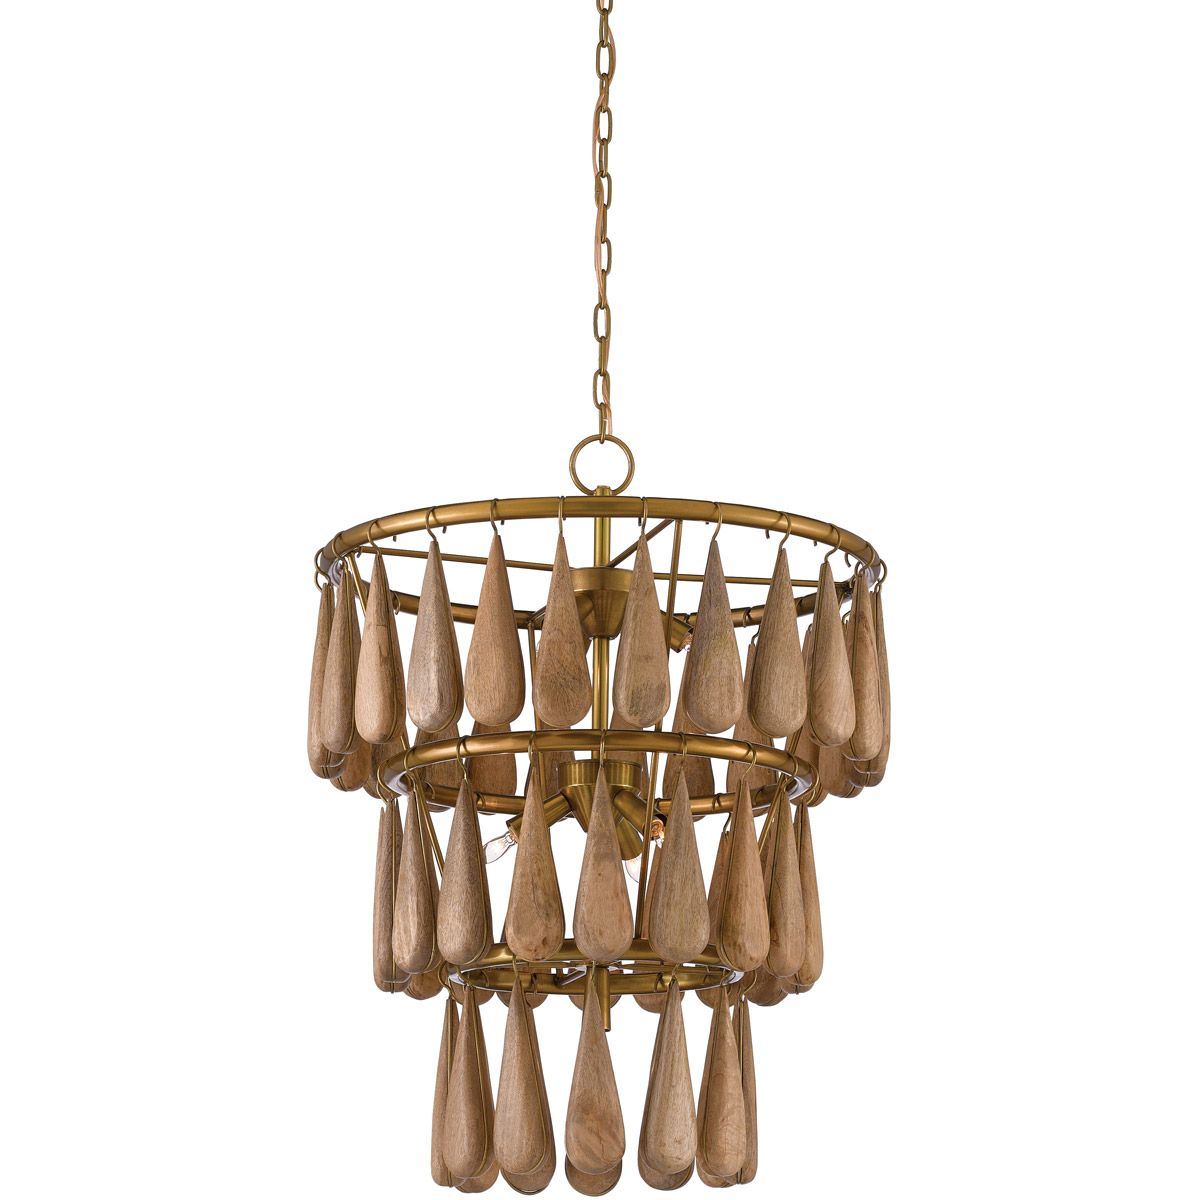 Currey Company 9000 0406 Savoiardi 7 Light 21 Inch Vintage Brass And Natural Chandelier Ceiling Light At Lightin Natural Chandeliers Chandelier Unusual Lamps